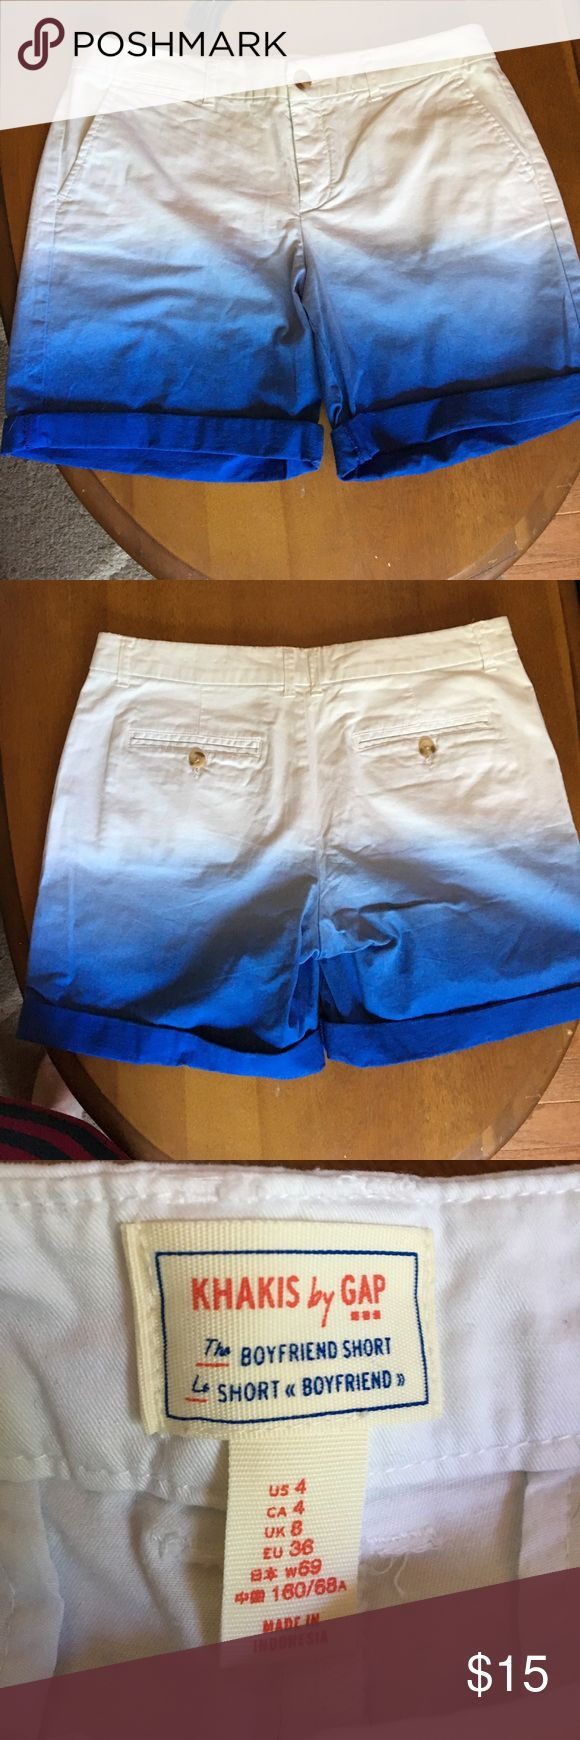 """Khakis by Gap blue and white ombré shorts Adorable ombré shorts from Gap. Hardly worn! 5"""" inseam without cuffing the bottom of the shorts. GAP Shorts"""